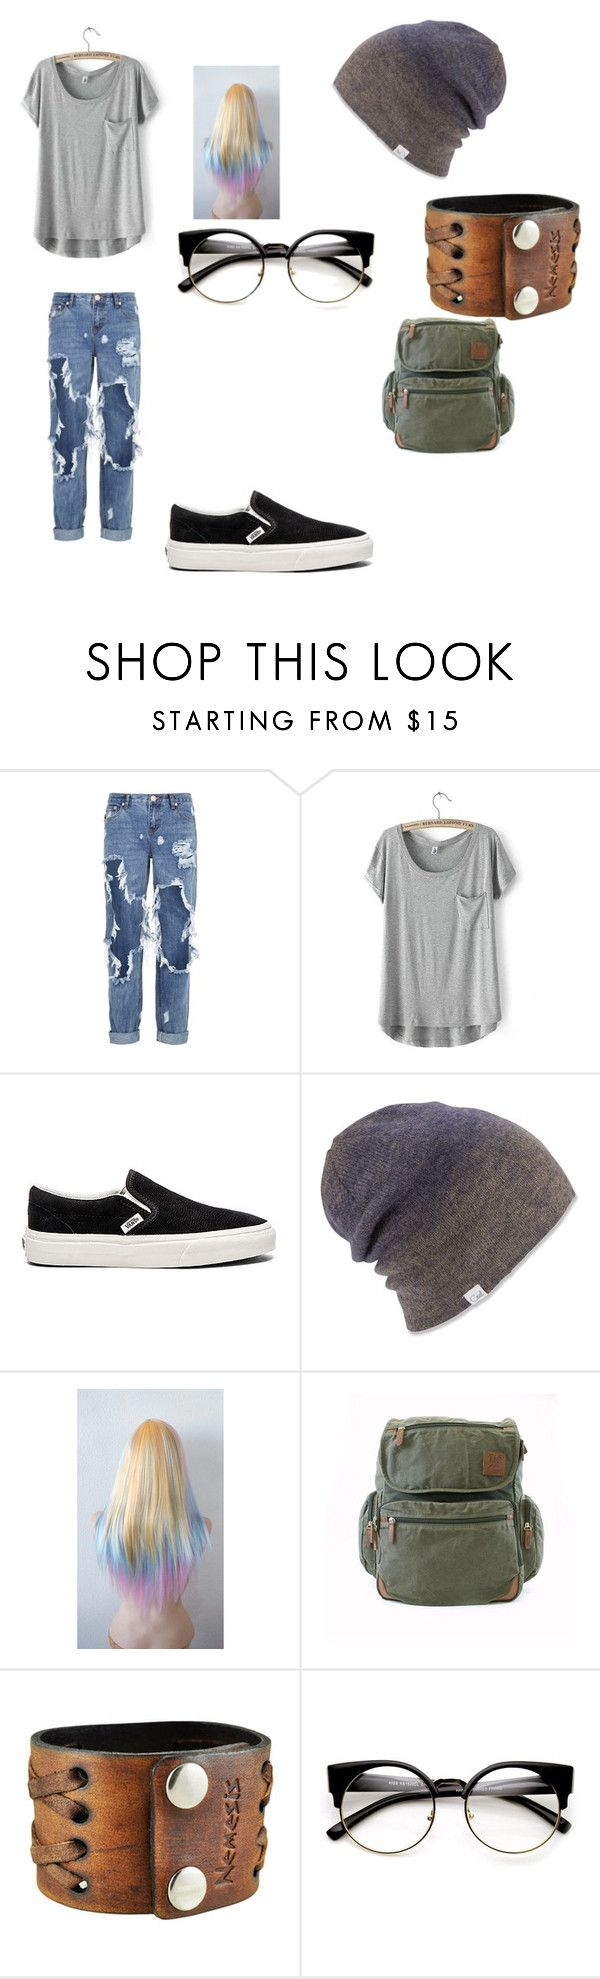 """Untitled #36"" by kendall-fosbender ❤ liked on Polyvore featuring One Teaspoon, Vans, Coal, Field & Stream and Nemesis"